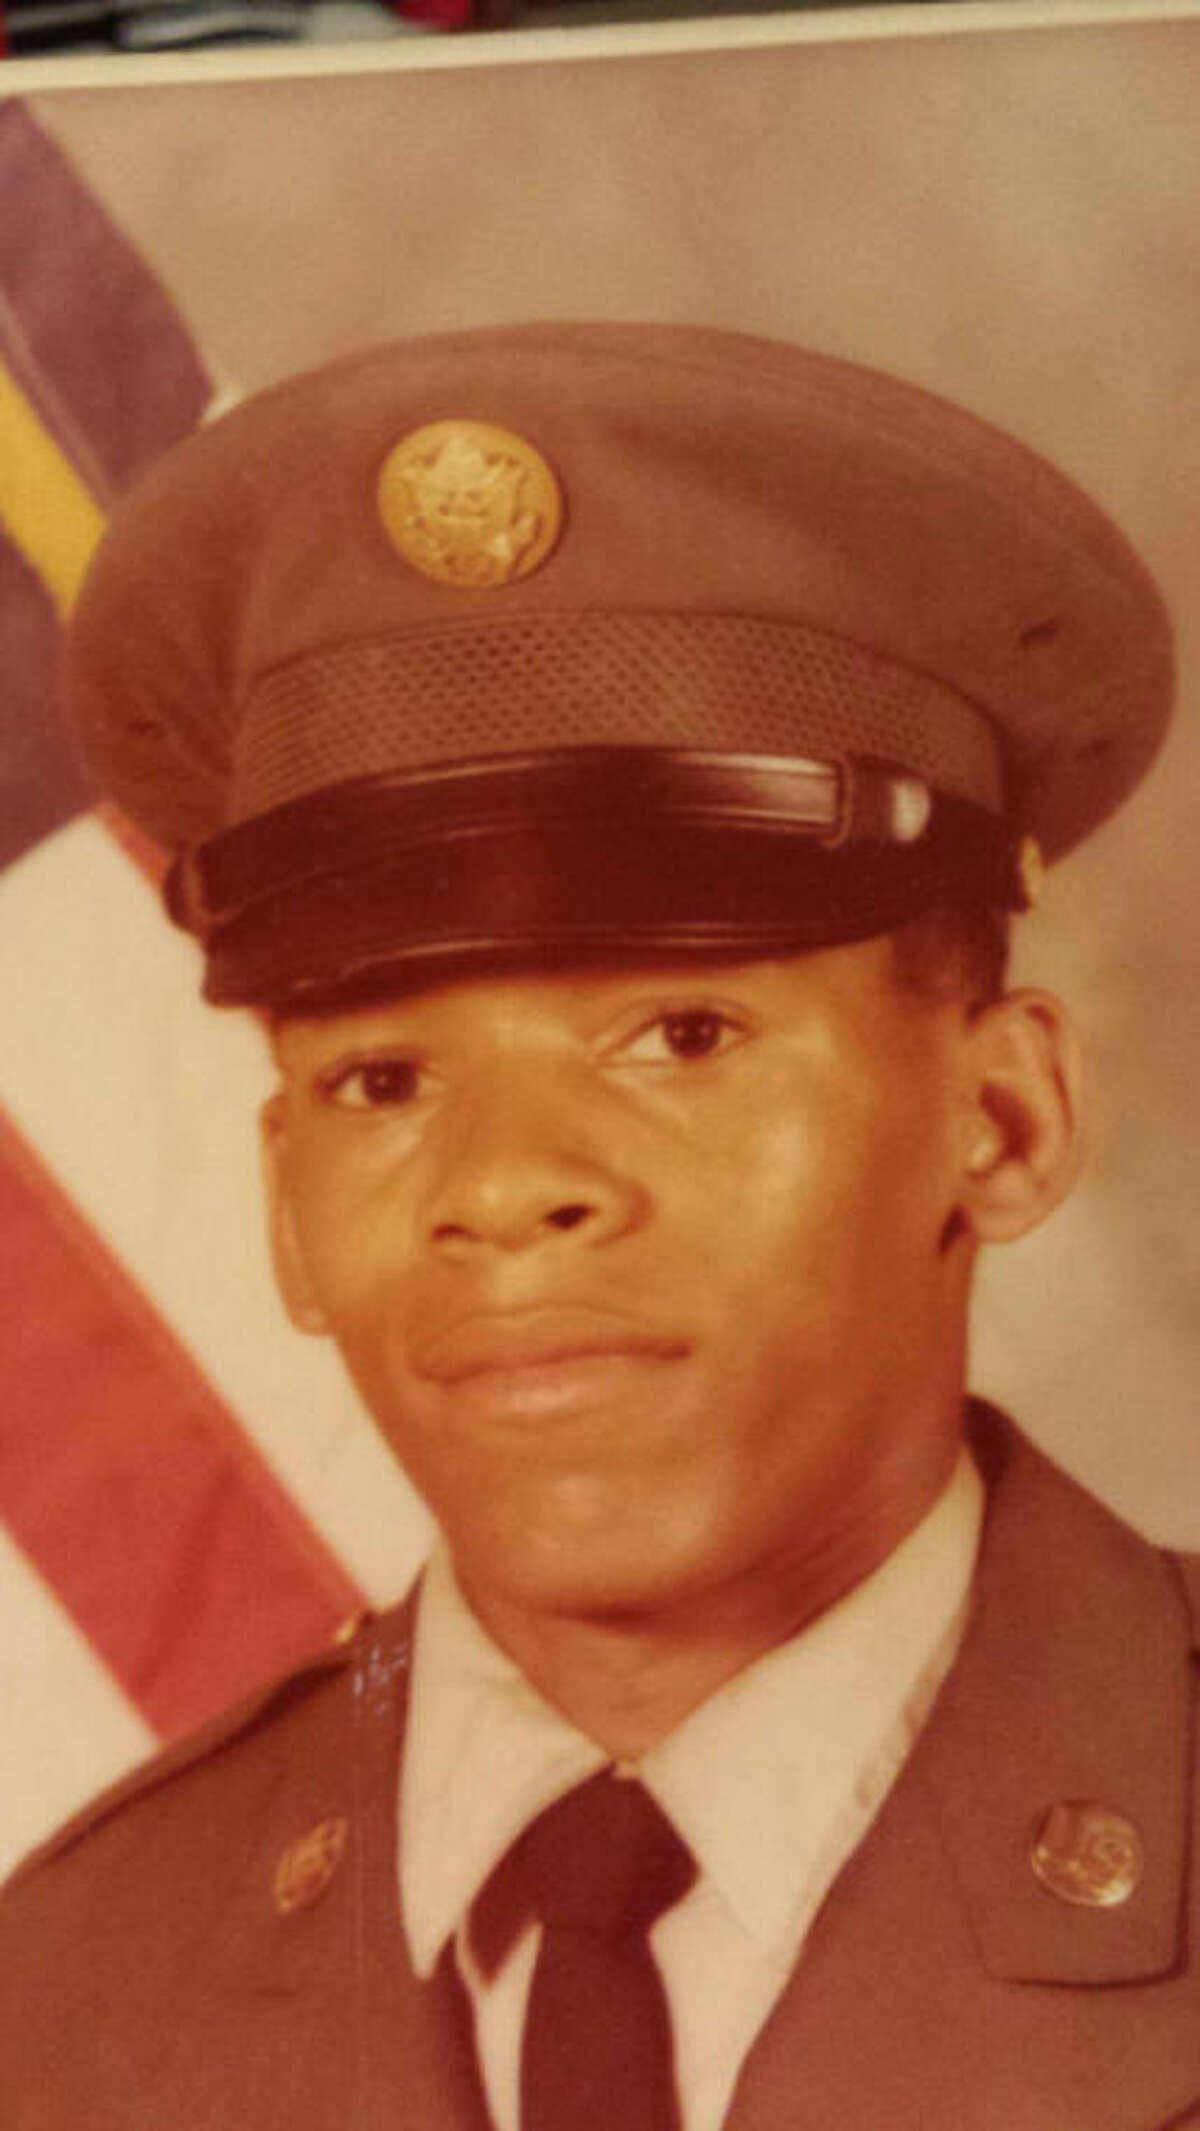 Ronald Wood in an Army uniform shortly after his 1977 graduation from Hudson High School. (Contributed photo)